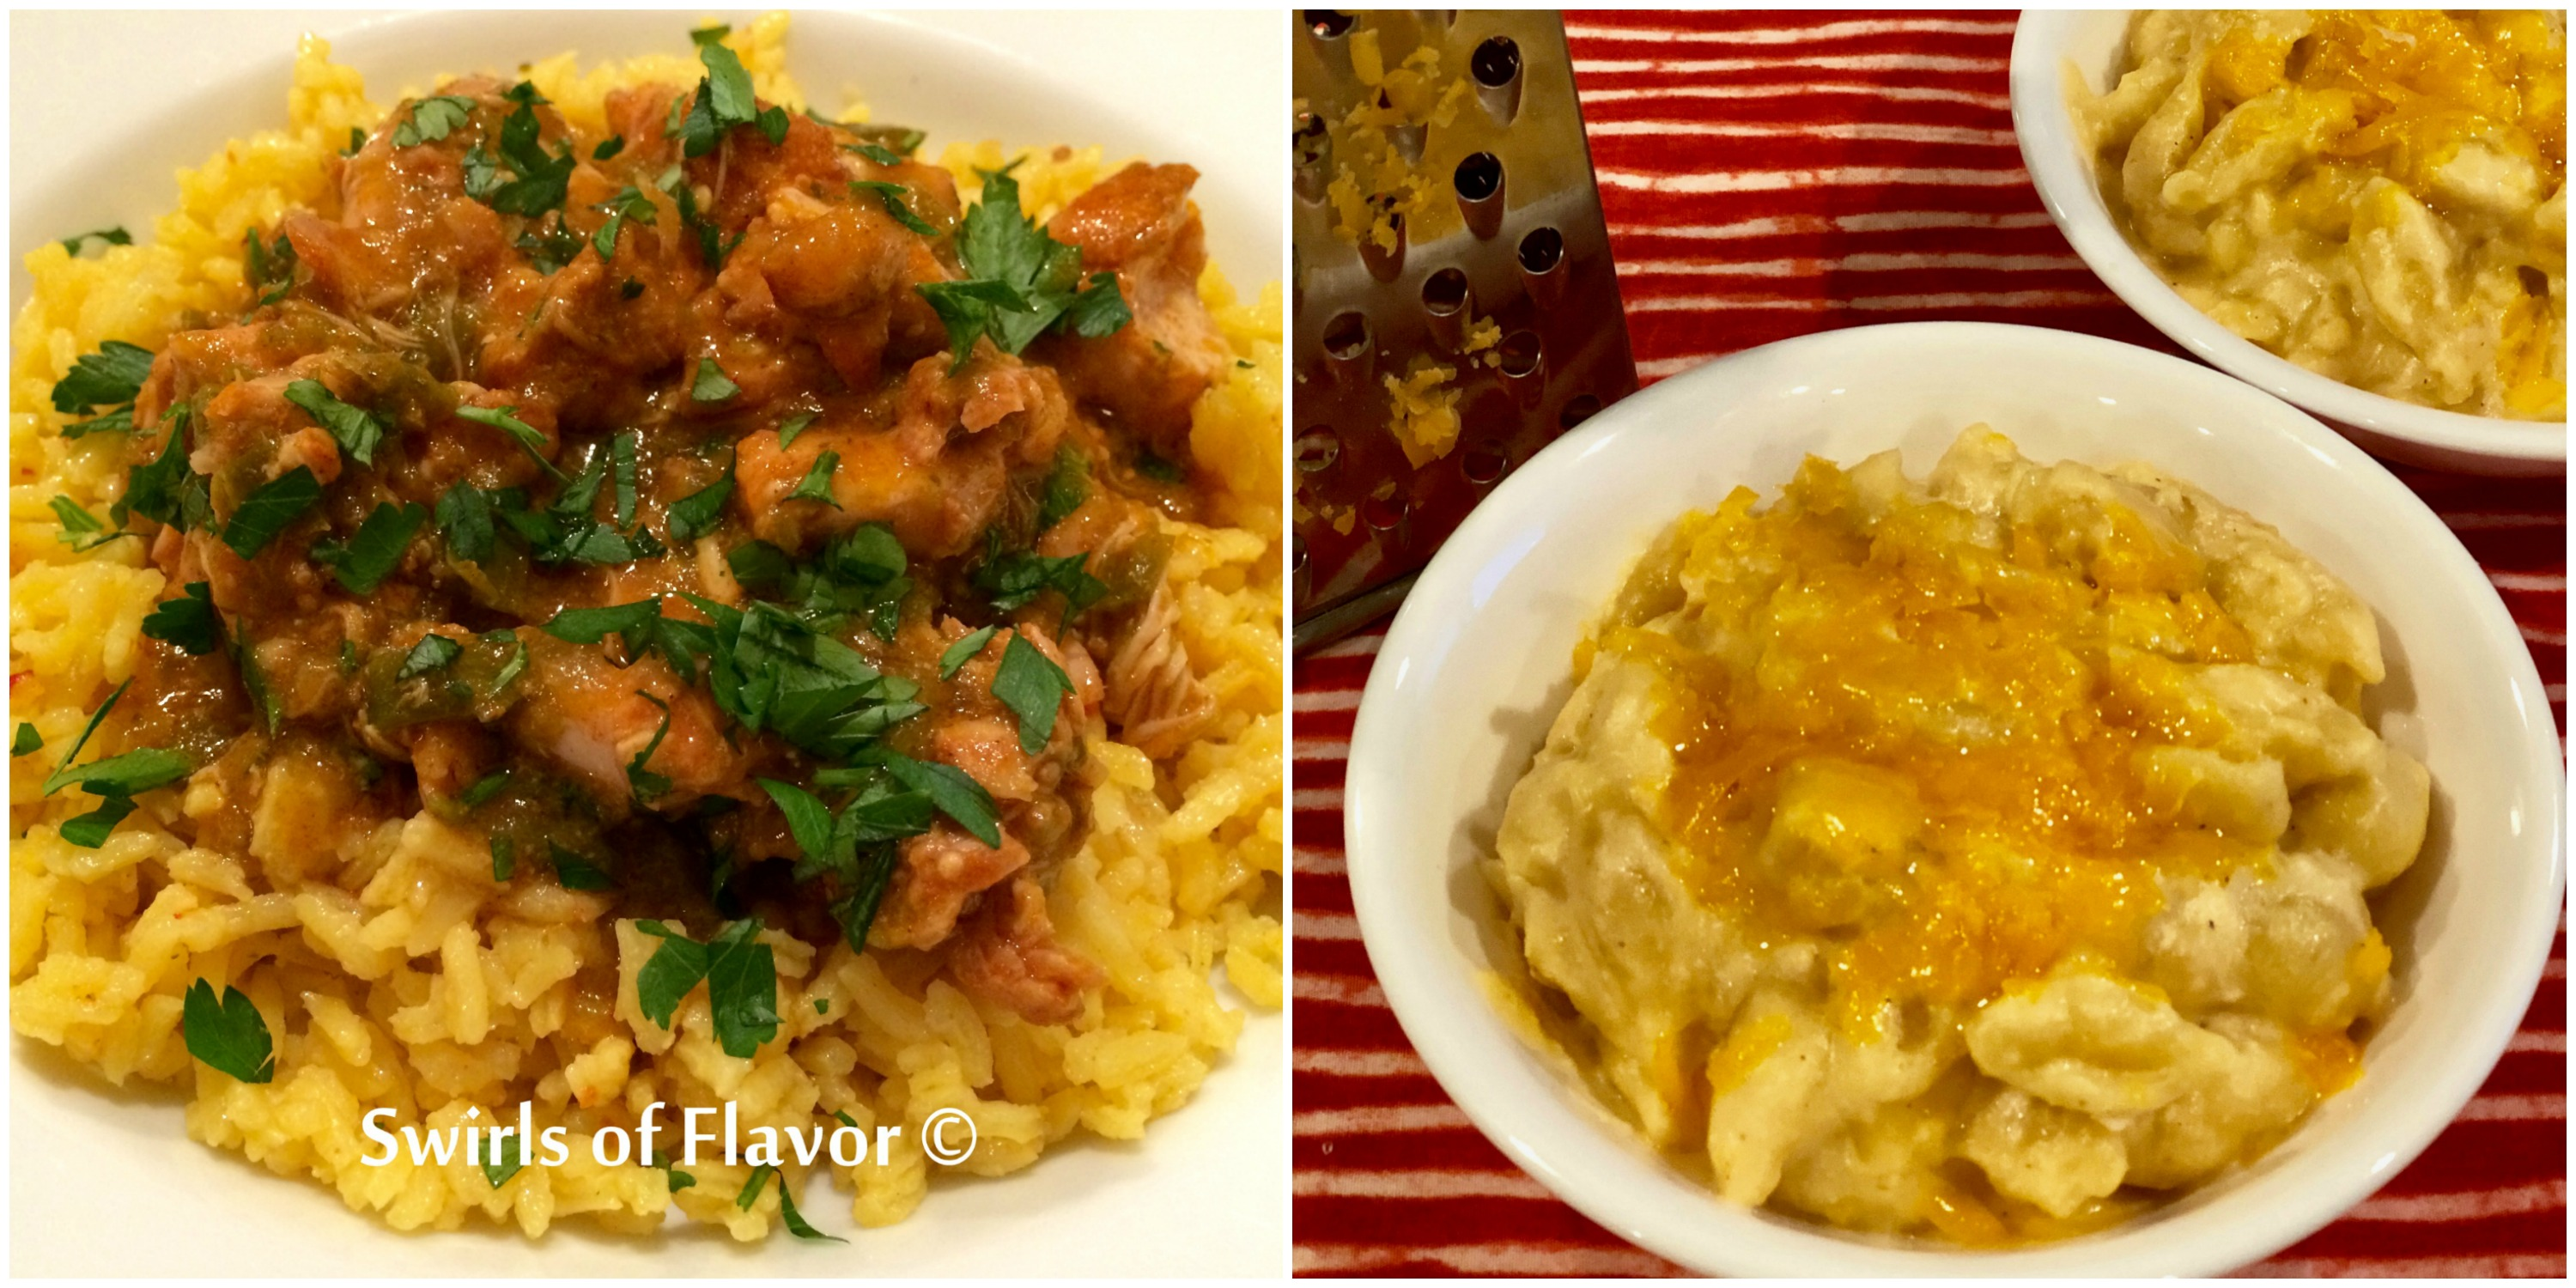 Salsa verde chicen and macaroni and cheese